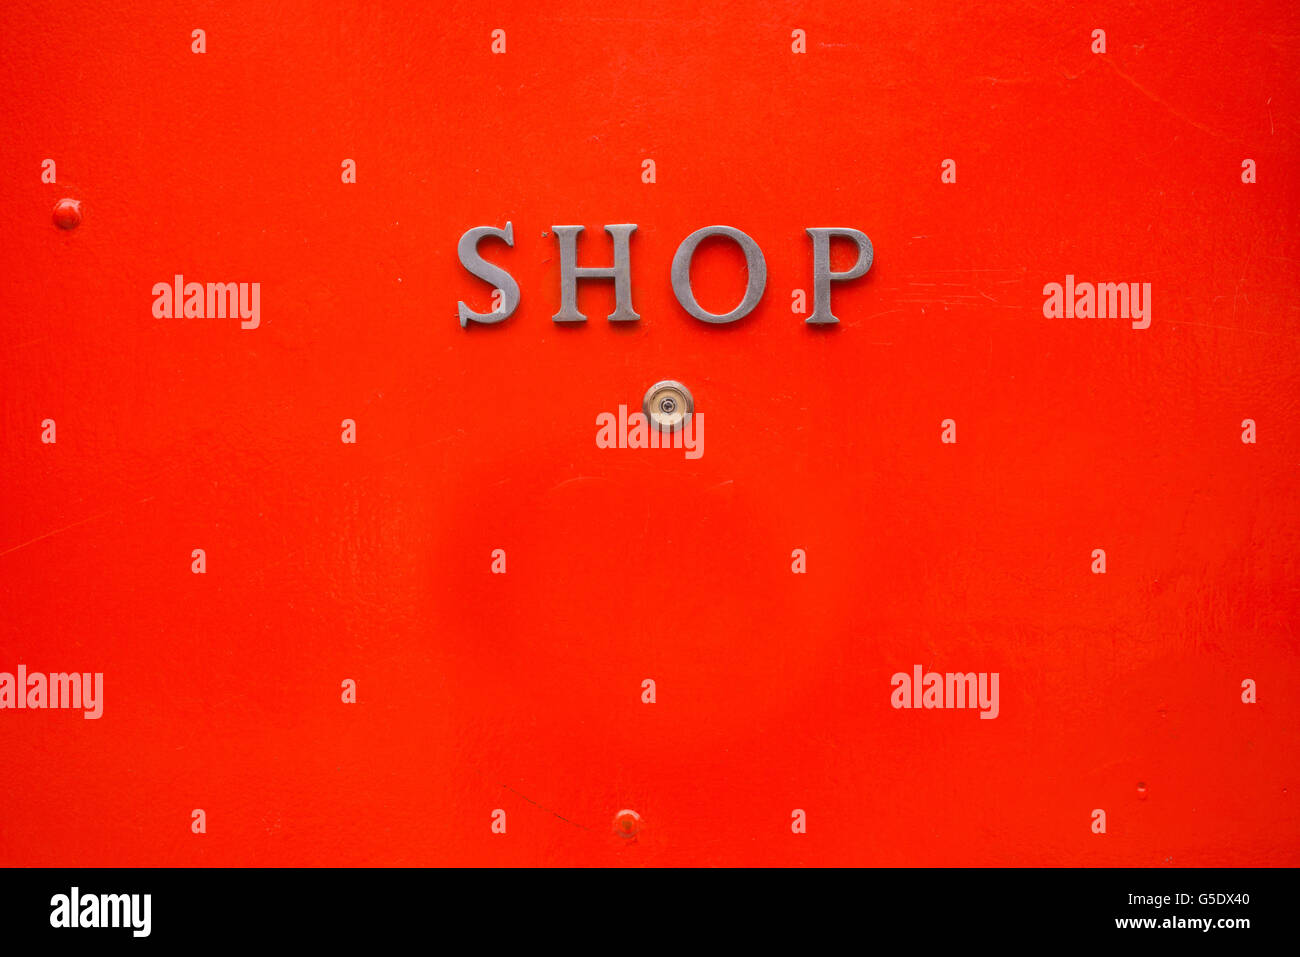 Shop written in metal letters on a bright red door background - Stock Image